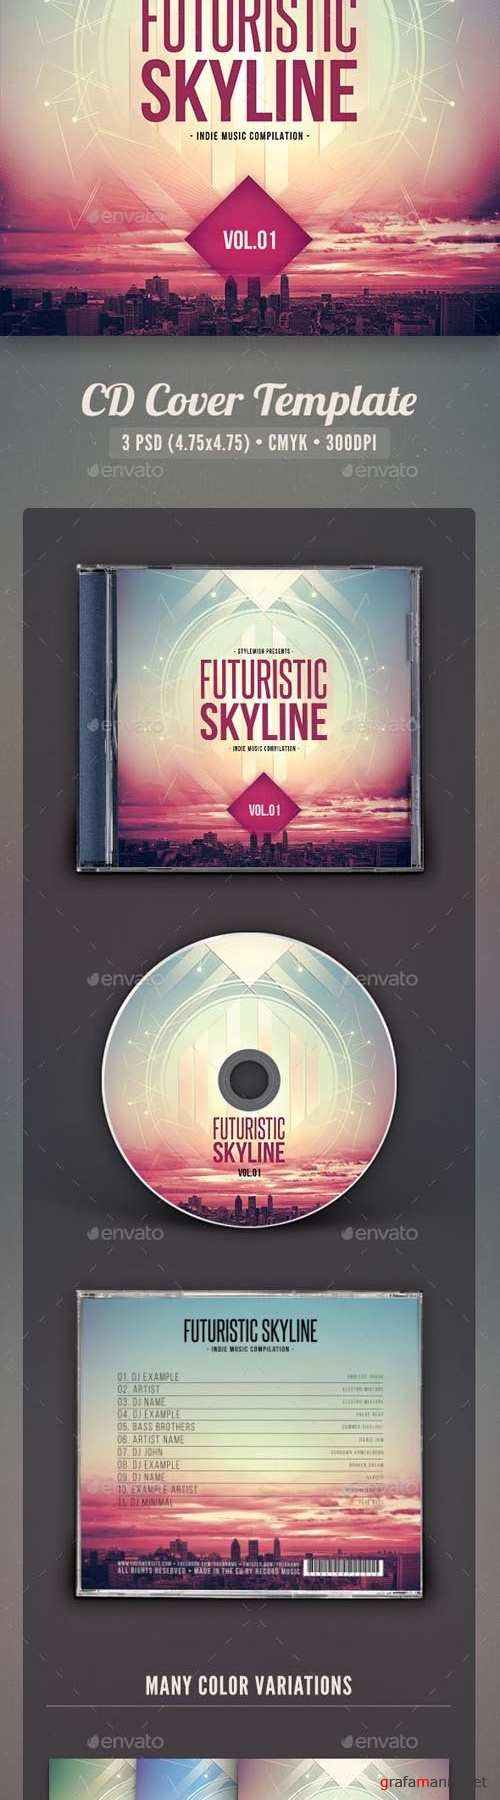 Futuristic Skyline CD Cover Artwork 16037661